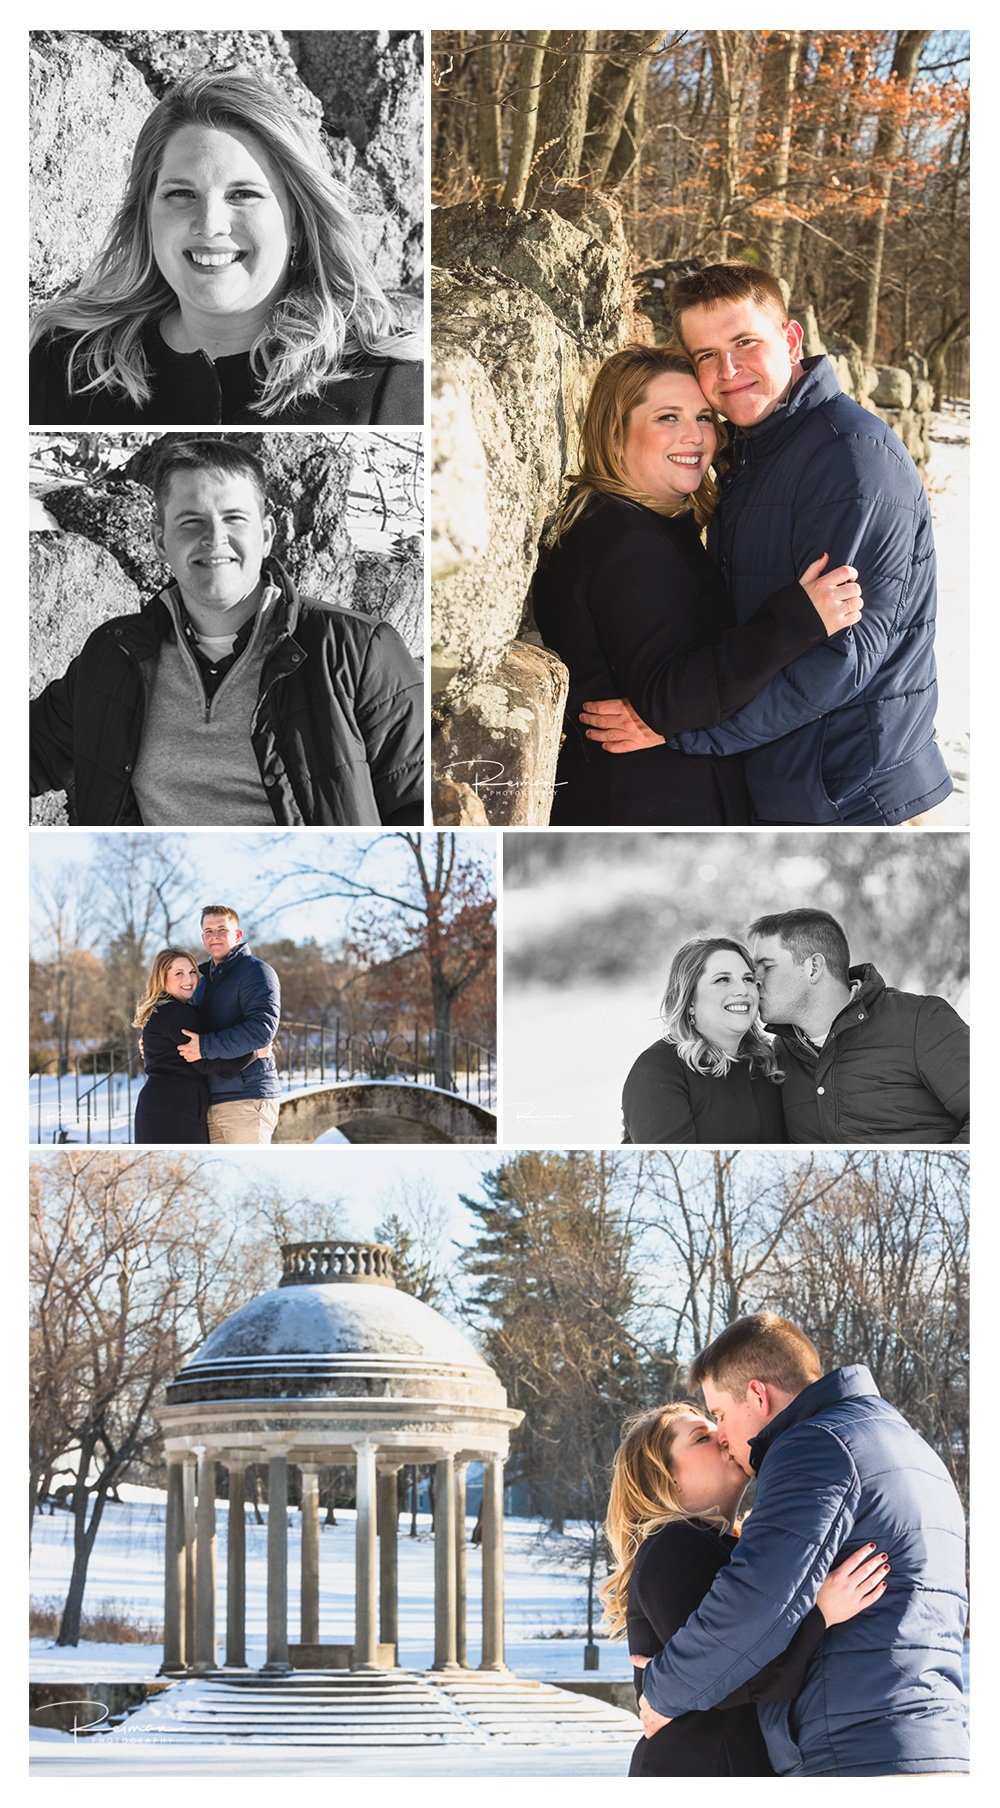 larz anderson park, Engagement Session, Reiman Photography, Winter